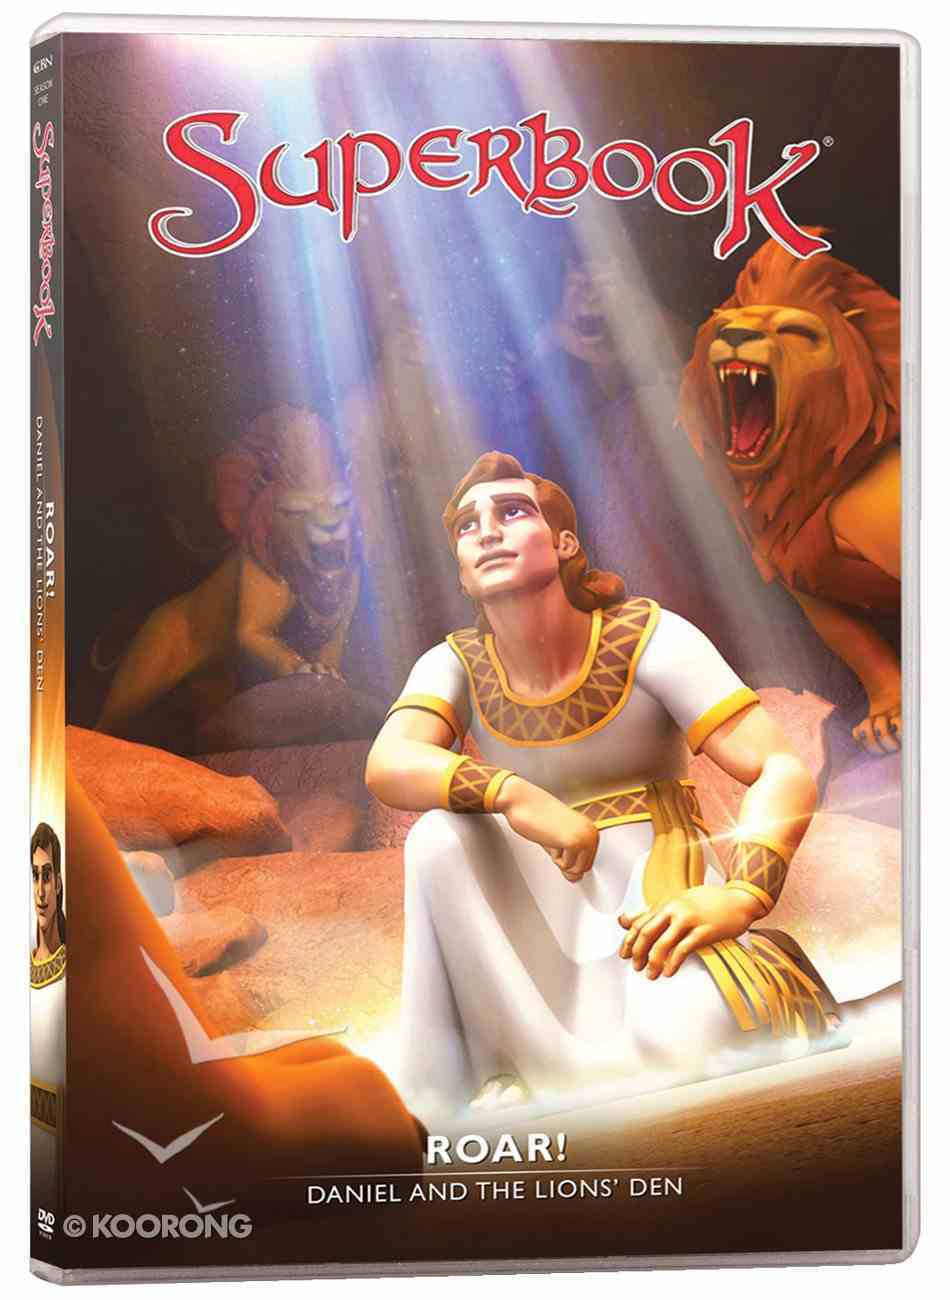 Roar! - Daniel and the Lion's Den (#08 in Superbook Dvd Series Season 01) DVD